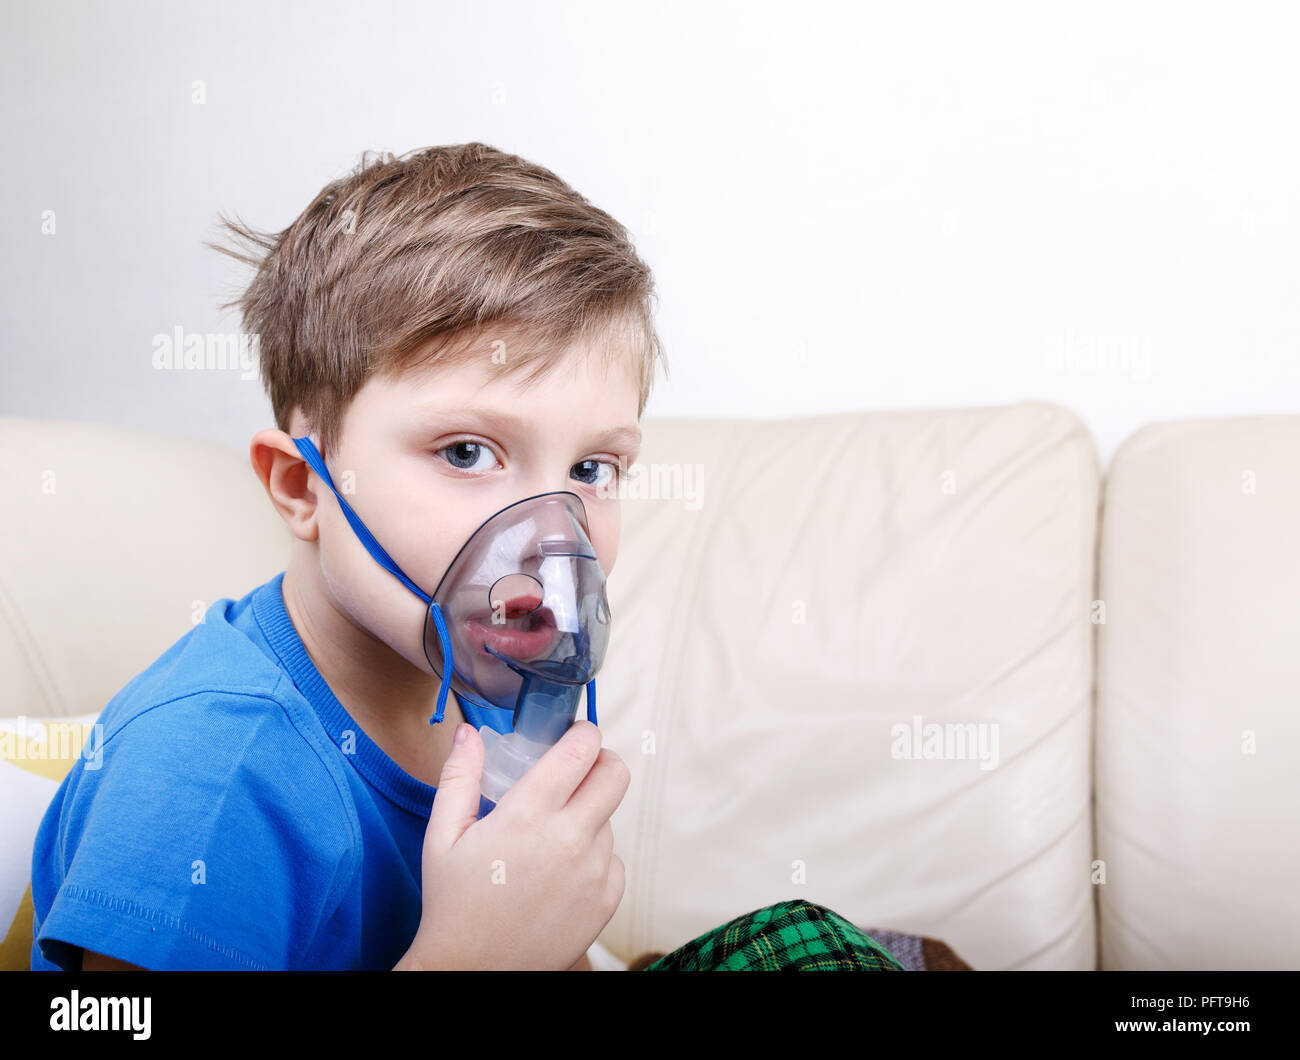 Sick chid with pediatric nebulizer looking at camera - Stock Image